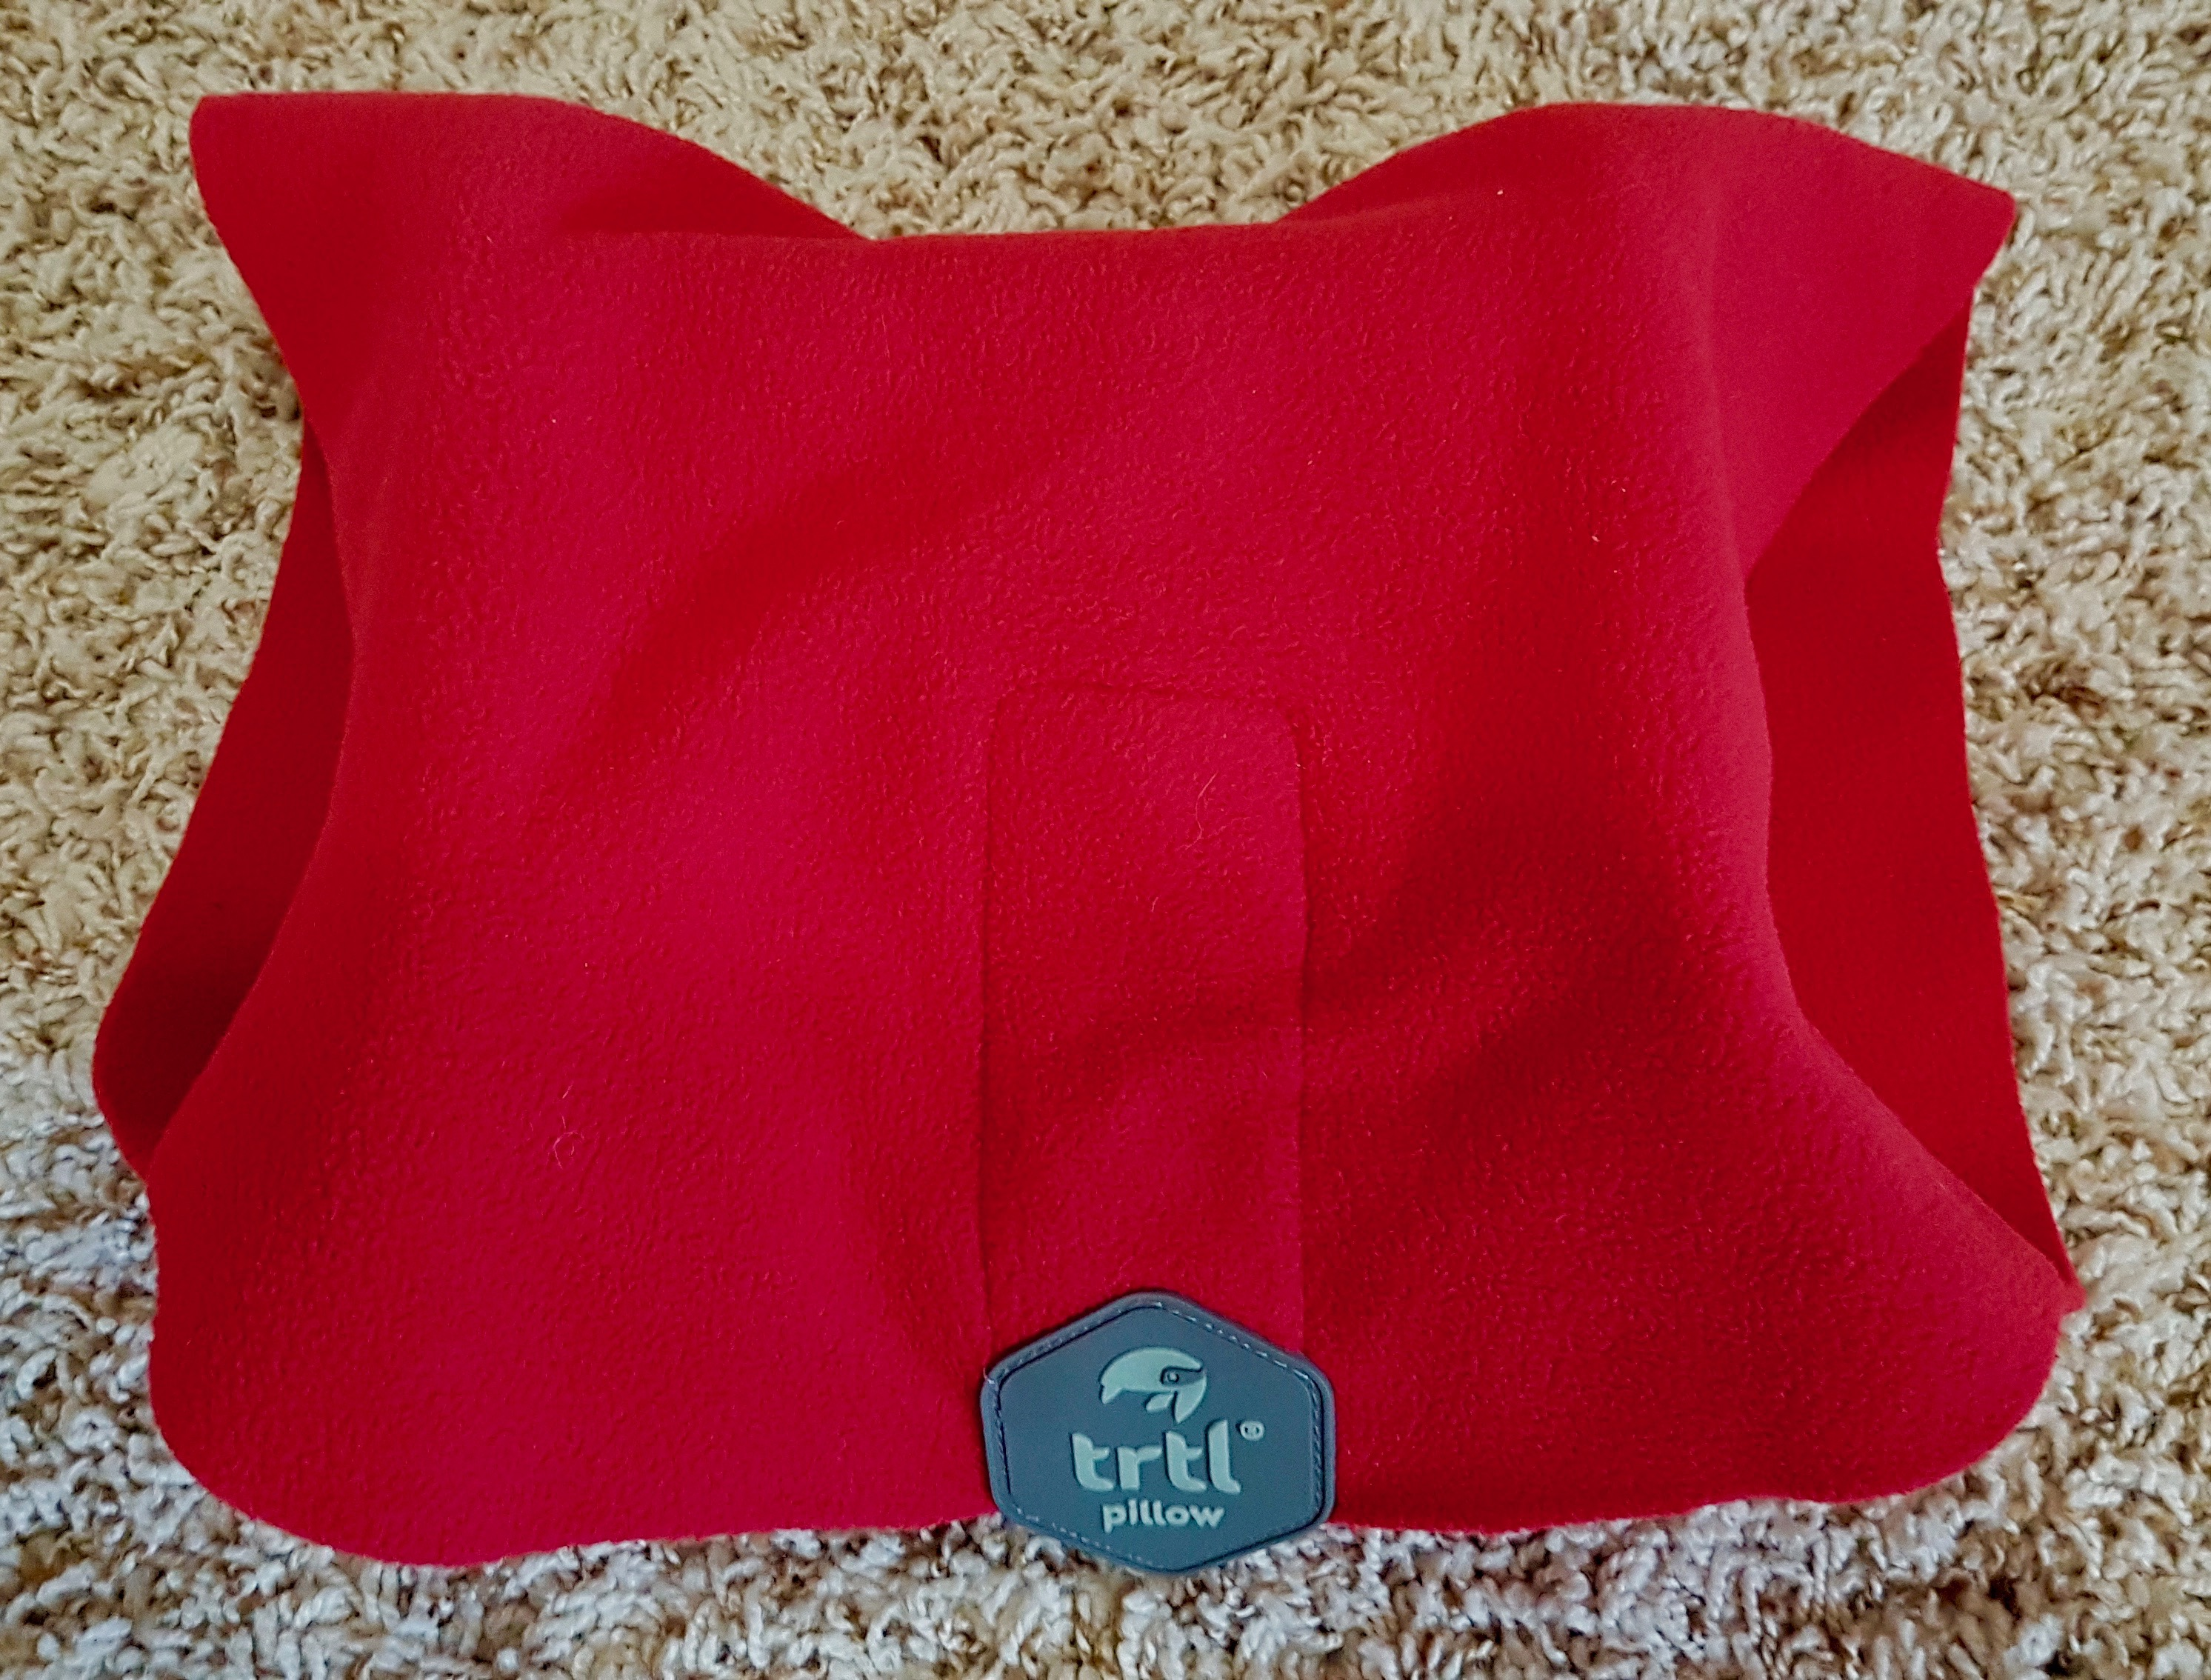 Trtl Pillow Review: an ultralight, comfy, and genius travel pillow. Finally!